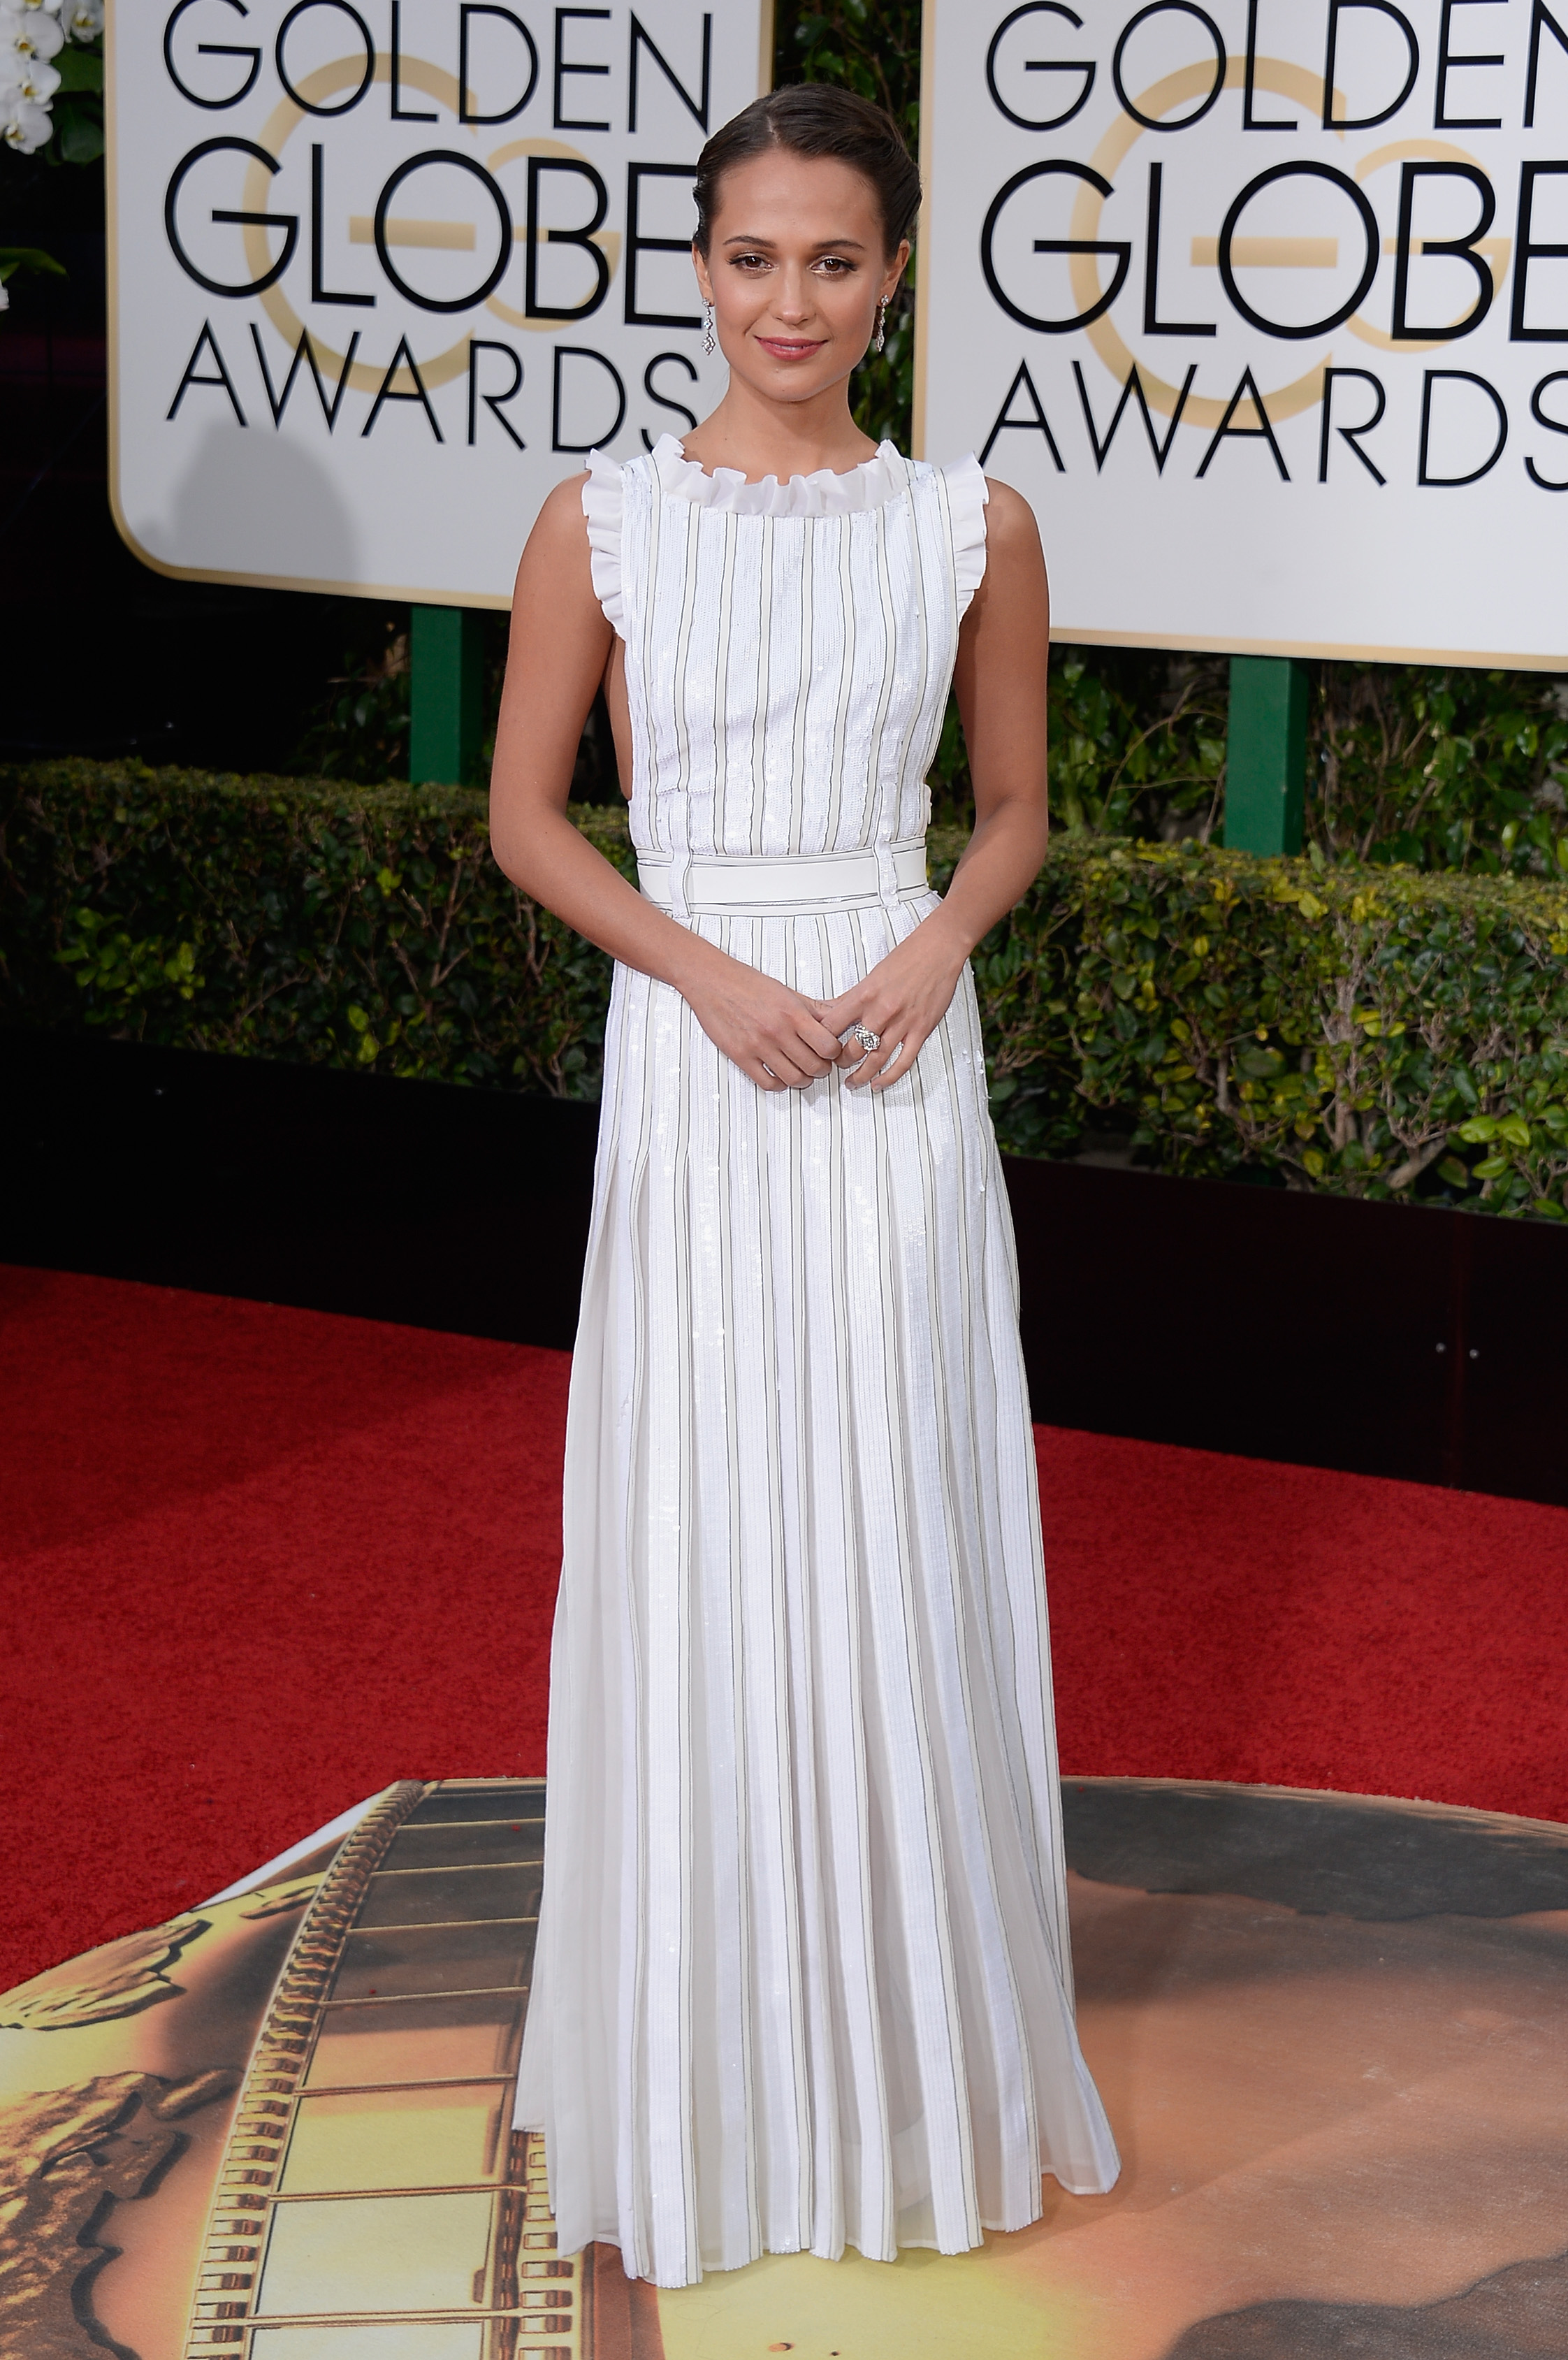 Alicia Vikander arrives to the 73rd Annual Golden Globe Awards on Jan. 10, 2016 in Beverly Hills.